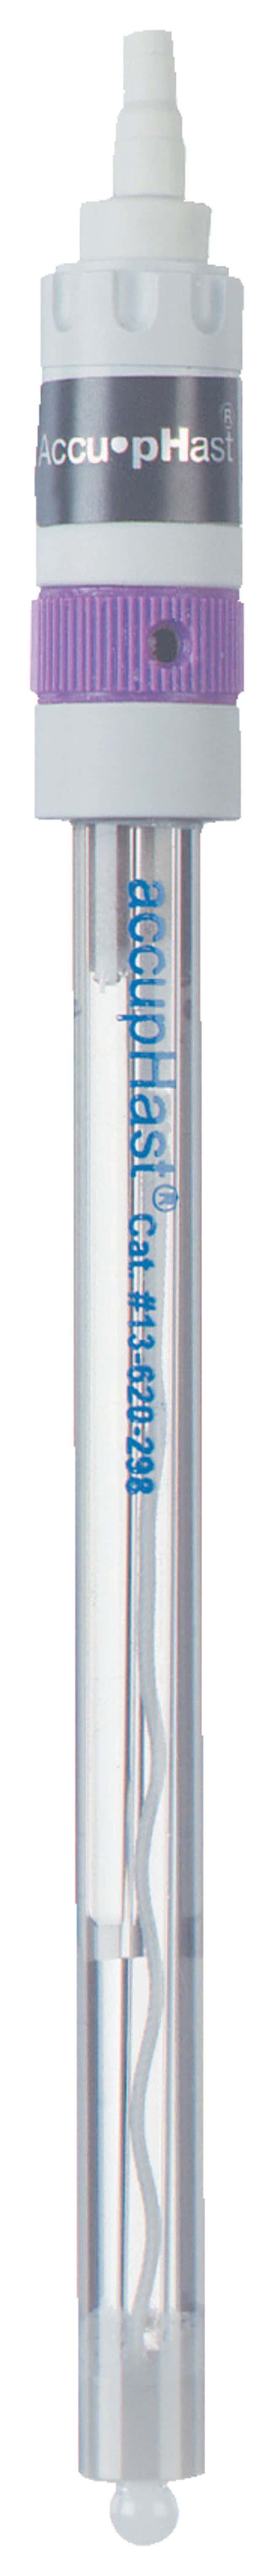 Fisherbrand™ accupHast™ Variable Temperature pH Combination Electrodes: Mercury-Free